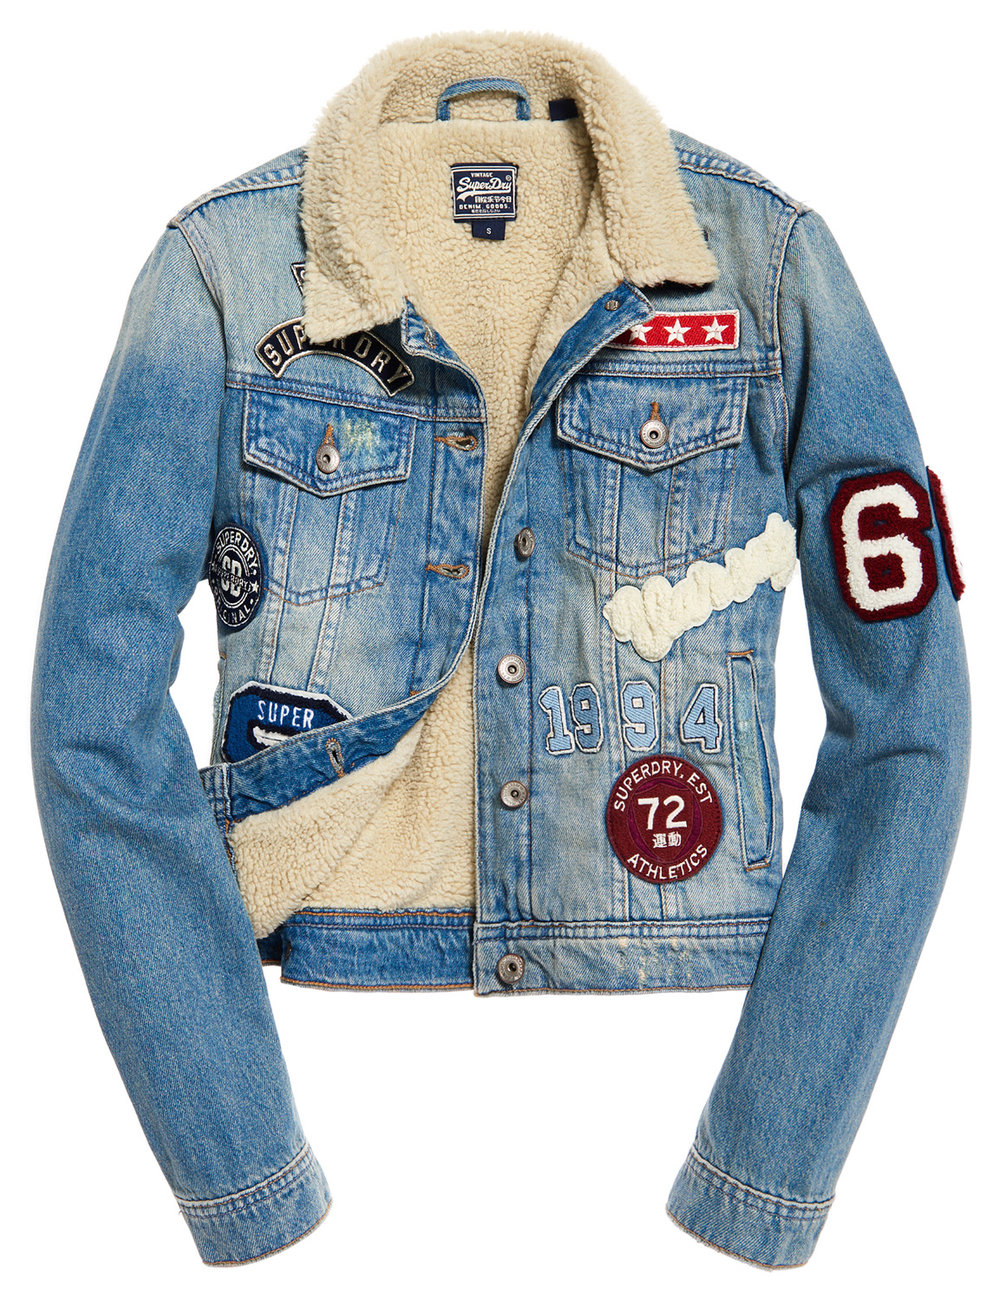 Superdry Sherpa Girlfriend Jacket £74.99 - 109.95€ www.superdry.com.jpg